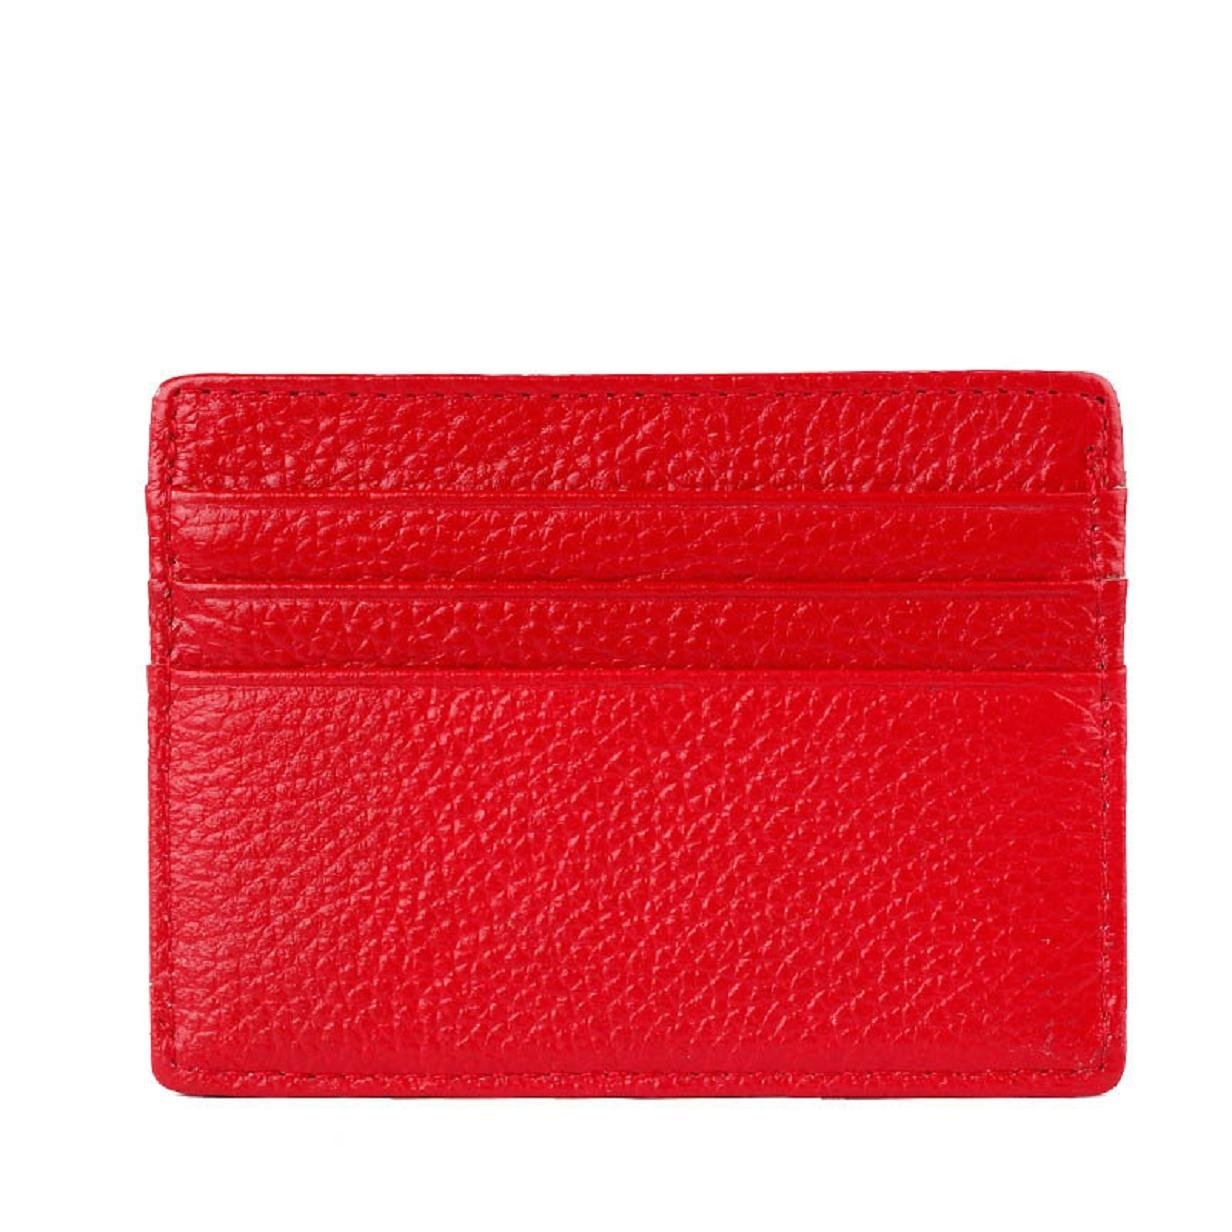 ABC® Mini Neutral Leather Wallet Card Holder Credit ID Card Purse